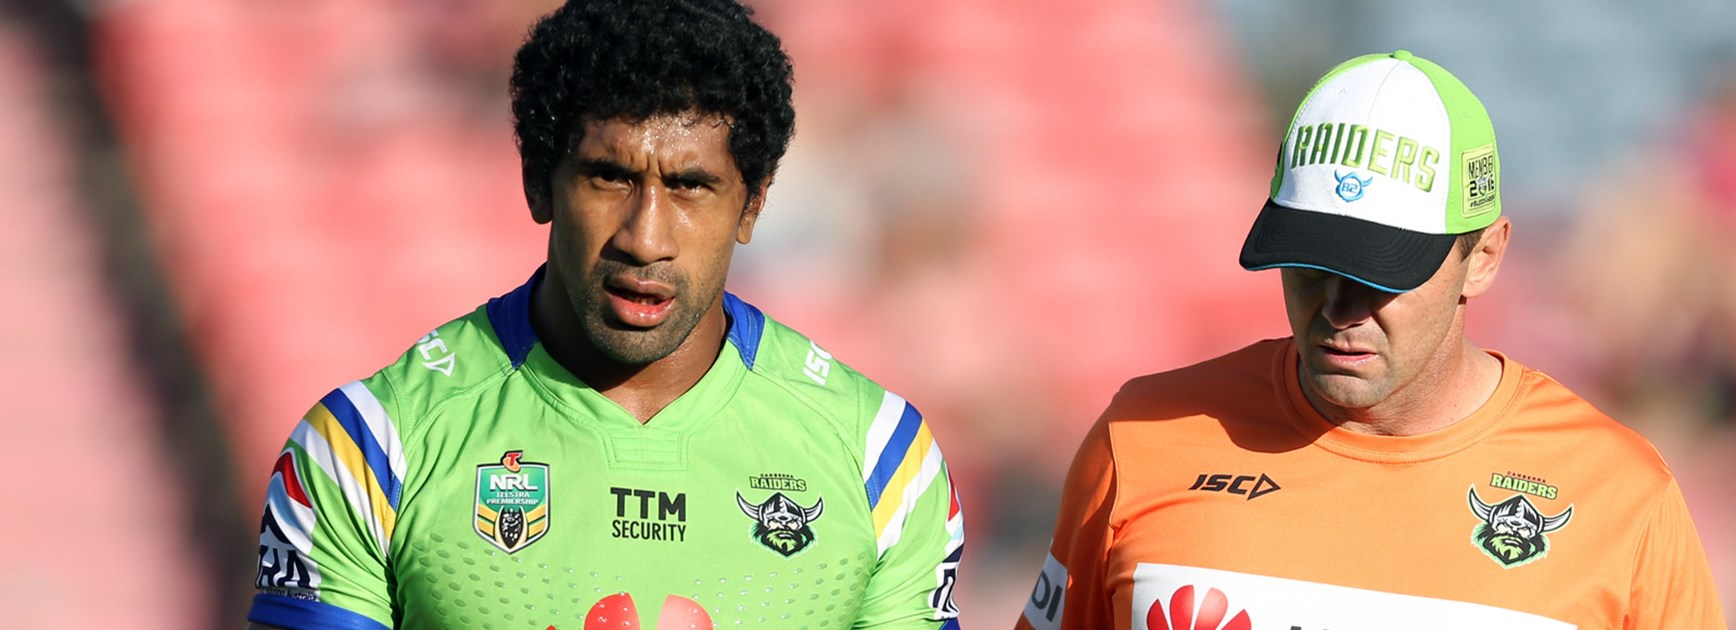 Raiders forward Sia Soliola will miss 6-8 weeks with an arm injury.